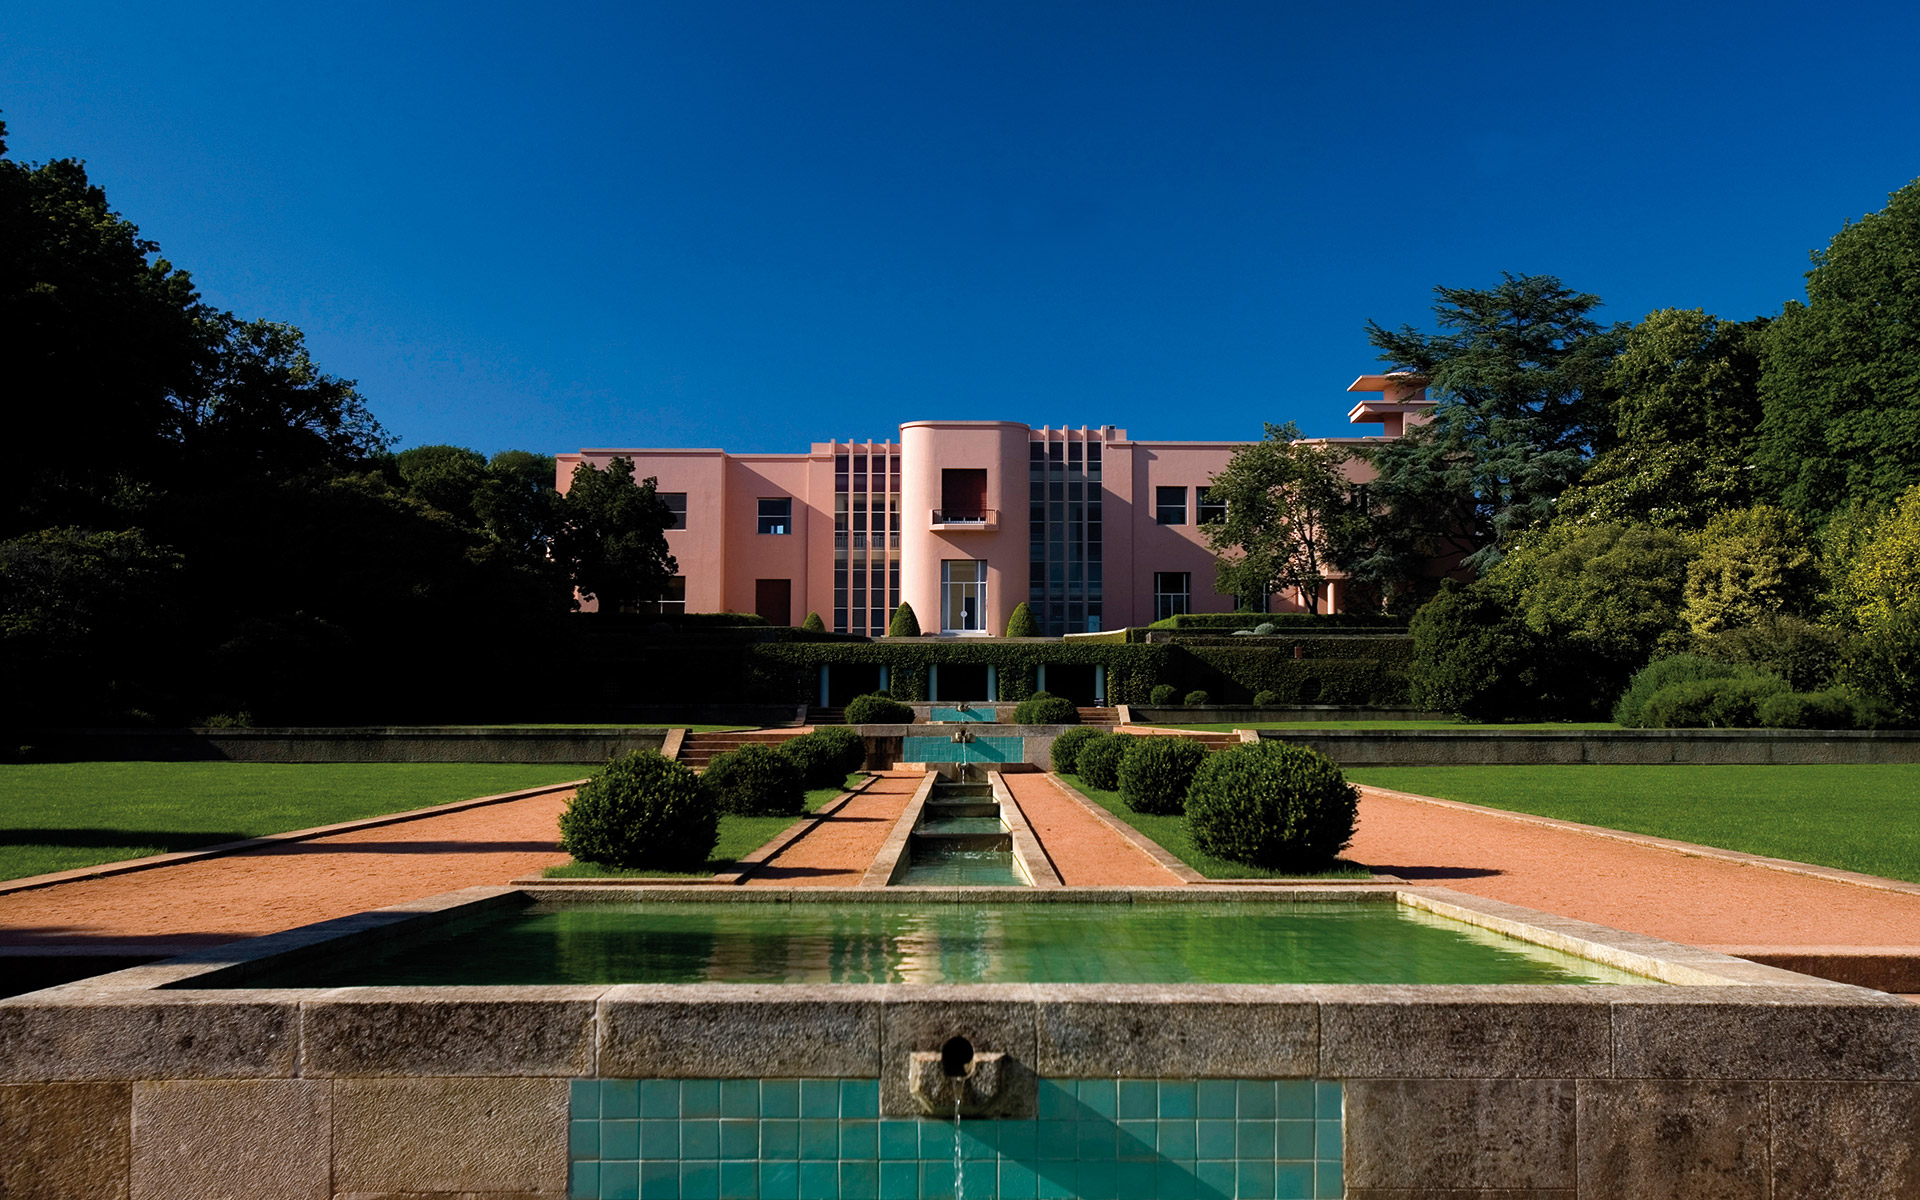 Prestigious Museums: Serralves Foundation museums in portugal Museums in Portugal: See a Selection of Some of the Most Prestigious See a Selection of Some of the Most Prestigious Museums in Portugal 5 1